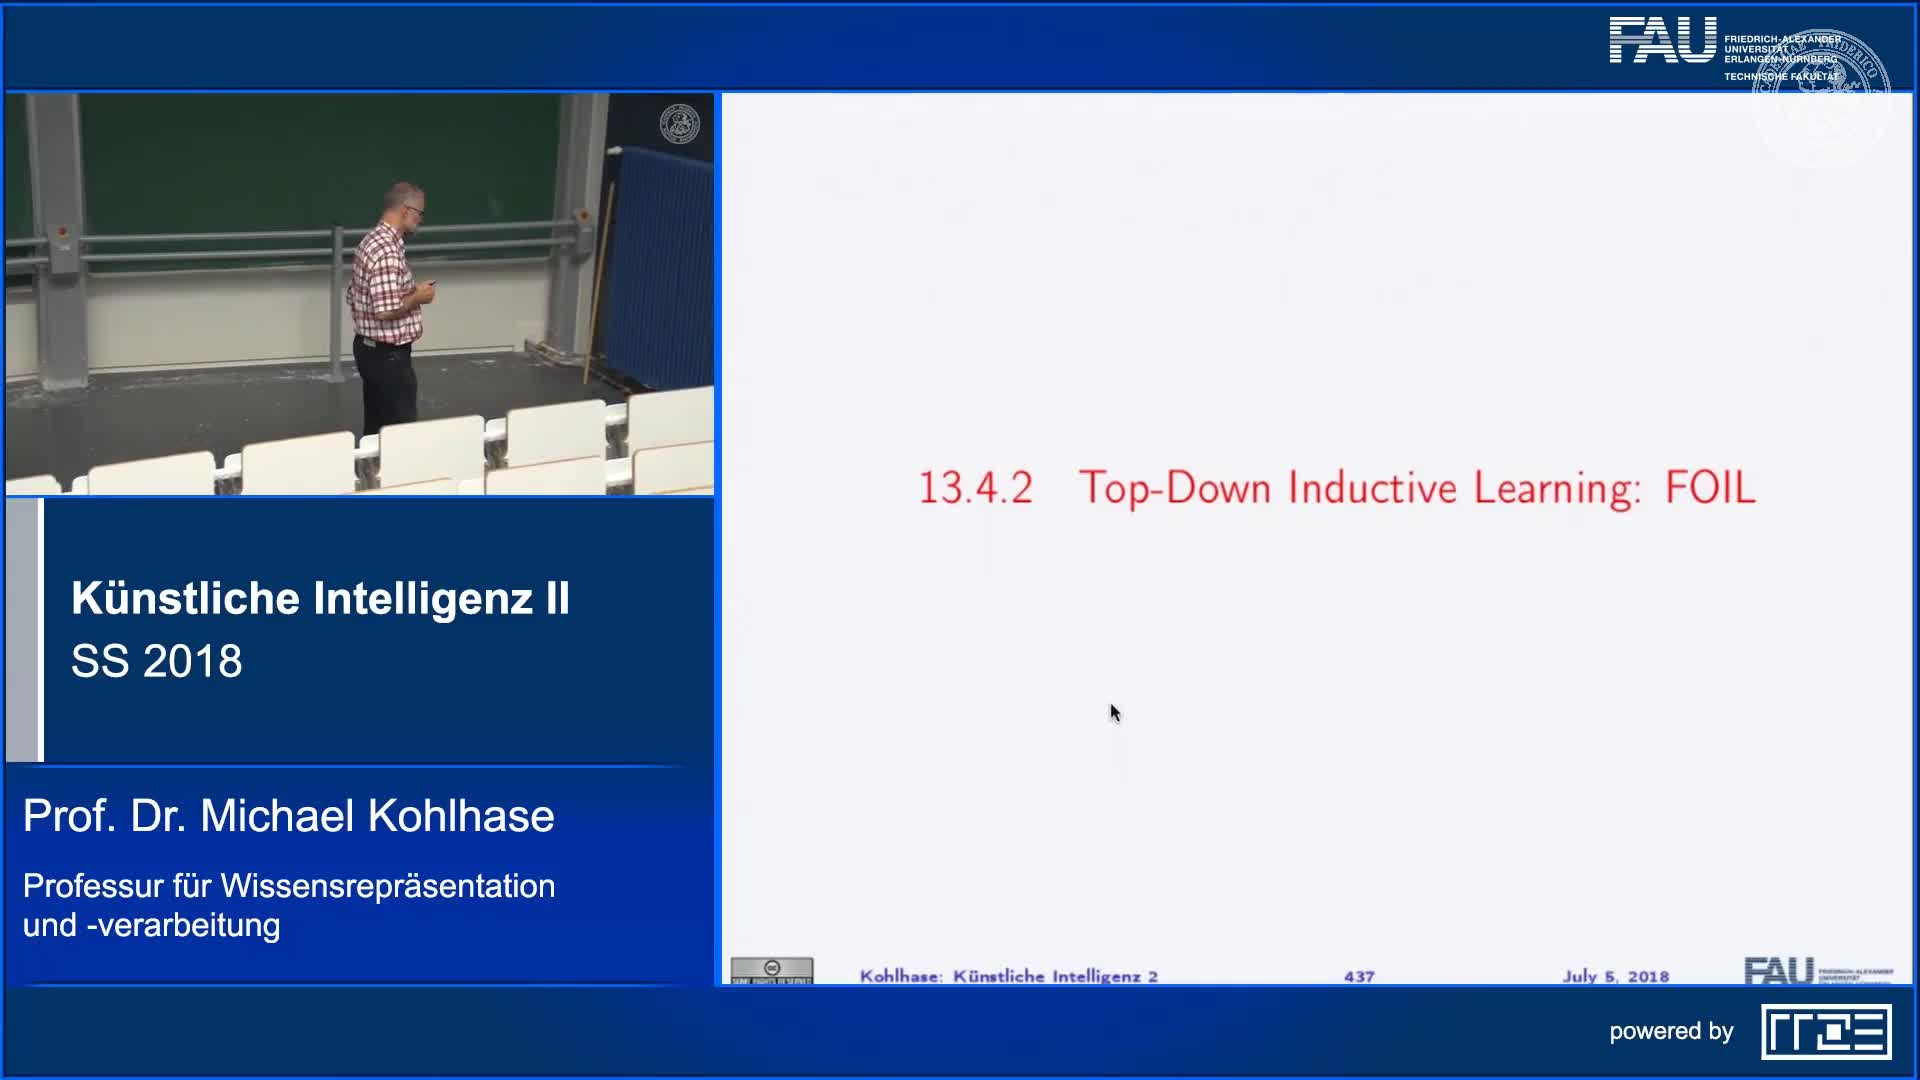 27.4.2. Inductive Logic Programming: Top-Down Inductive Learning: FOIL preview image